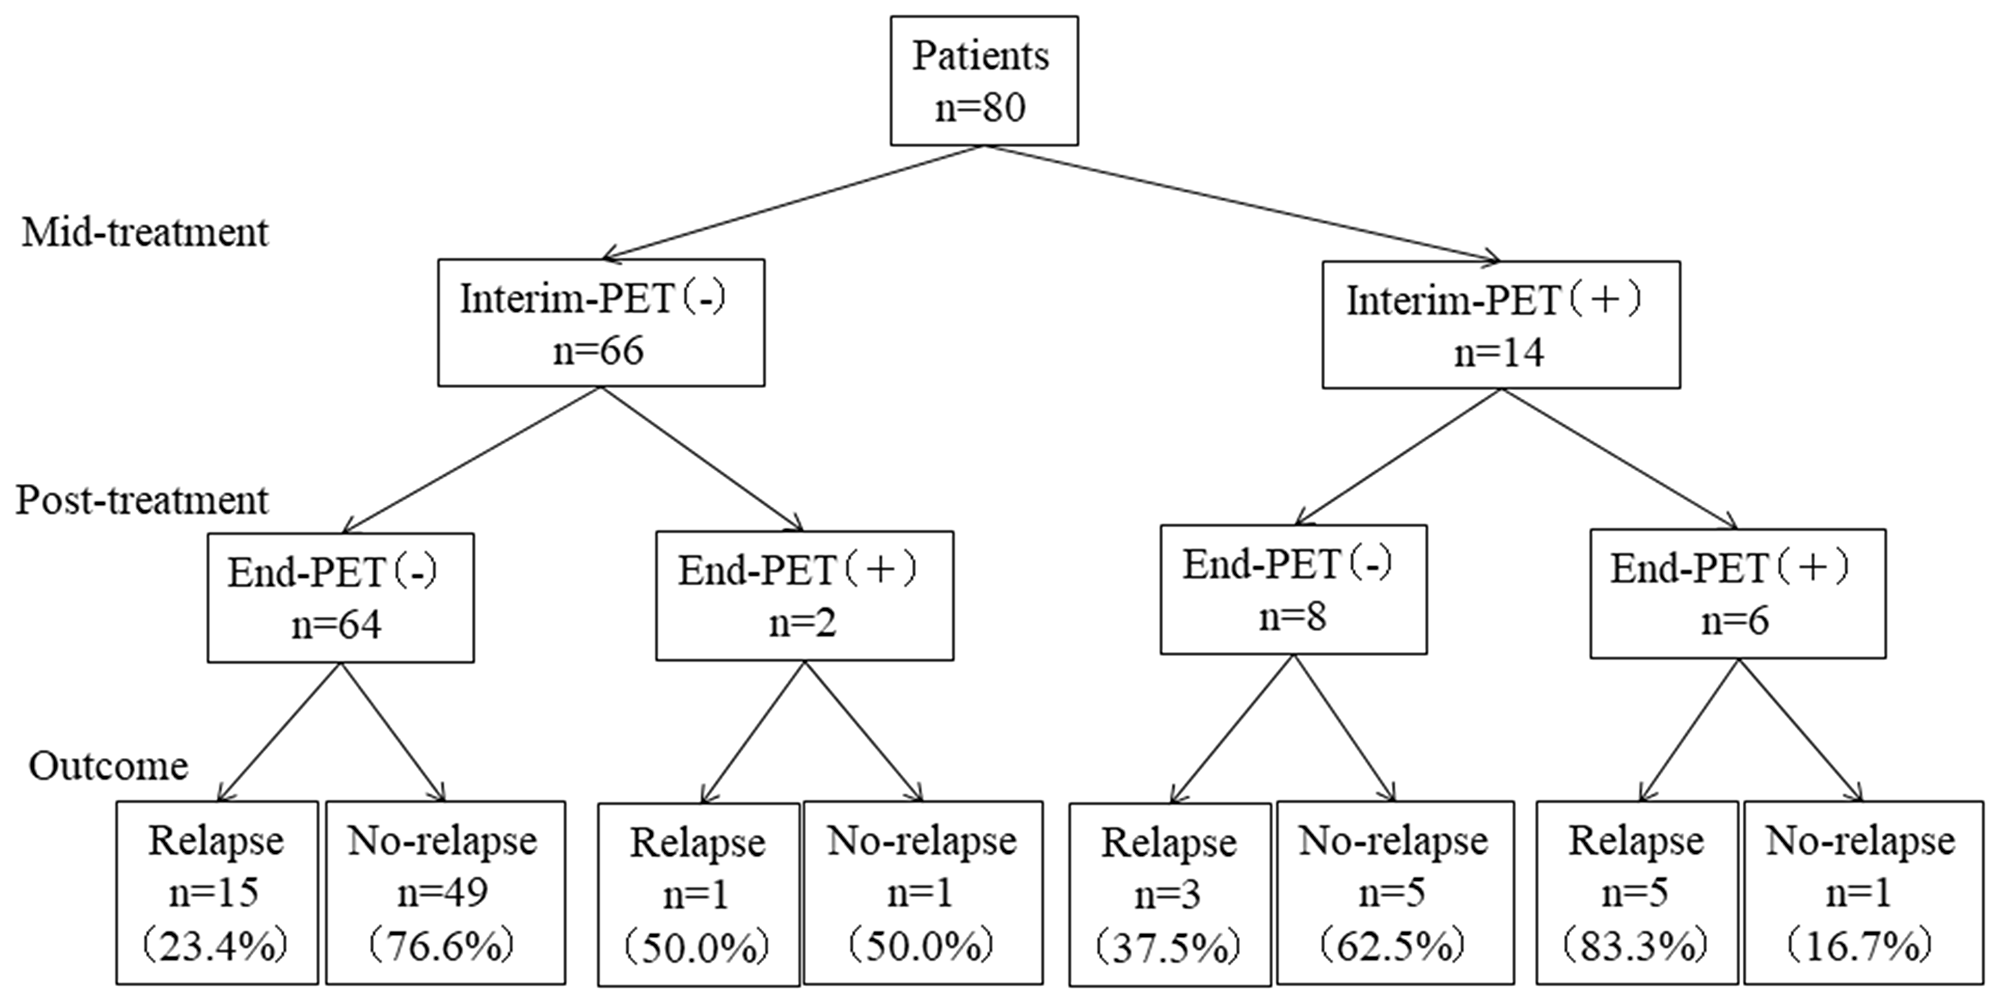 Patient-outcomes according to Interim-PET and End-PET.